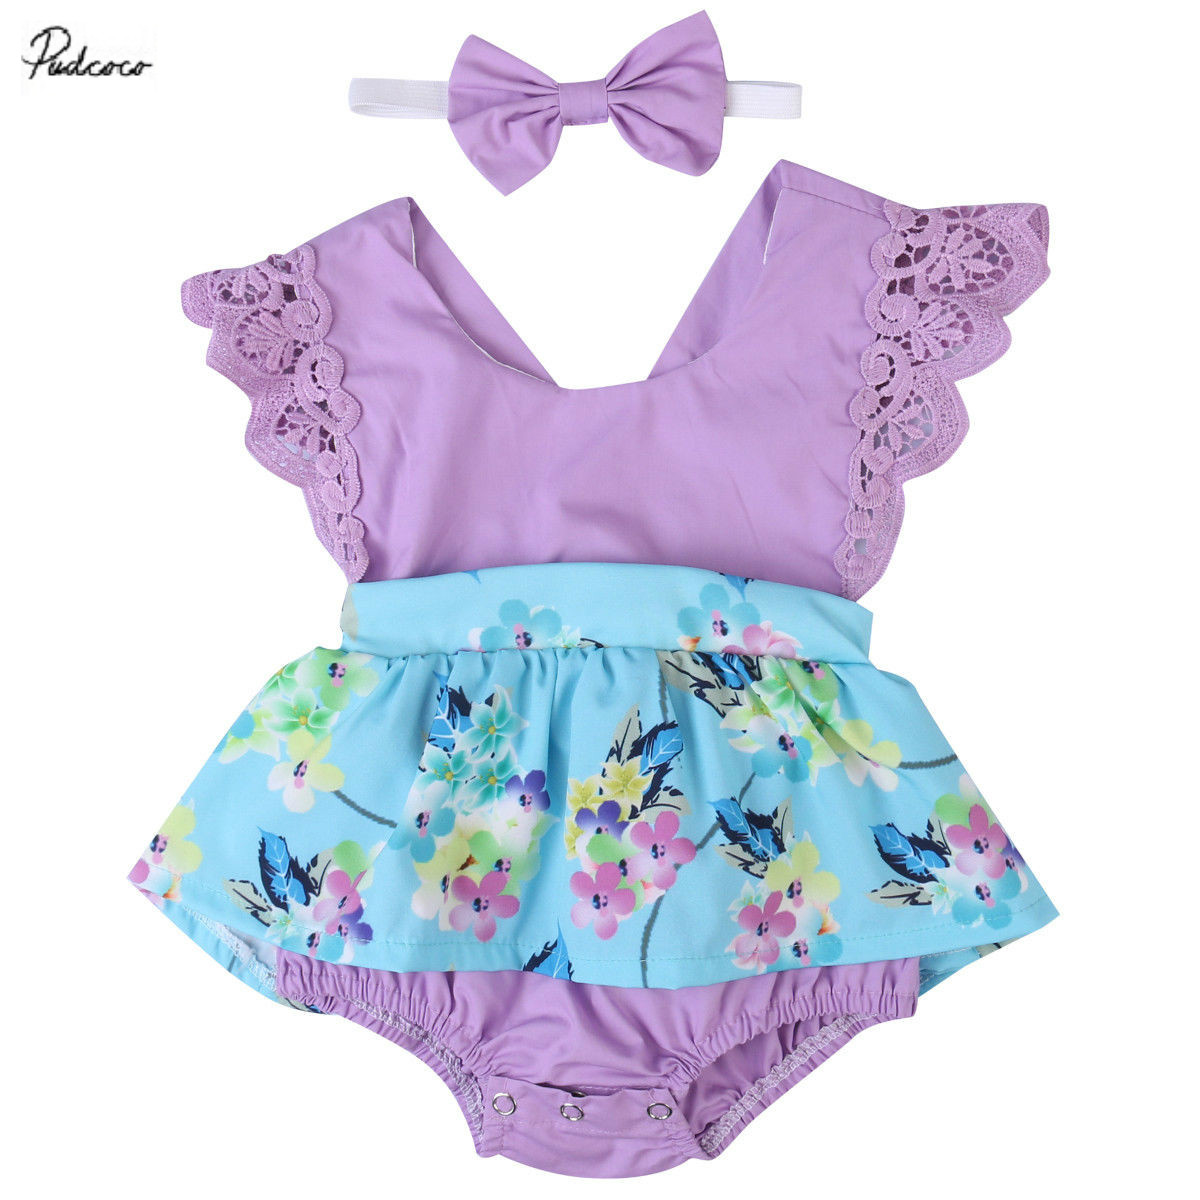 все цены на Cute Lace Floral Print Rompers Dress Purple blue Summer Baby Girls Ruffles Sleeve Romper Flower Jumpsuit Headband outfits